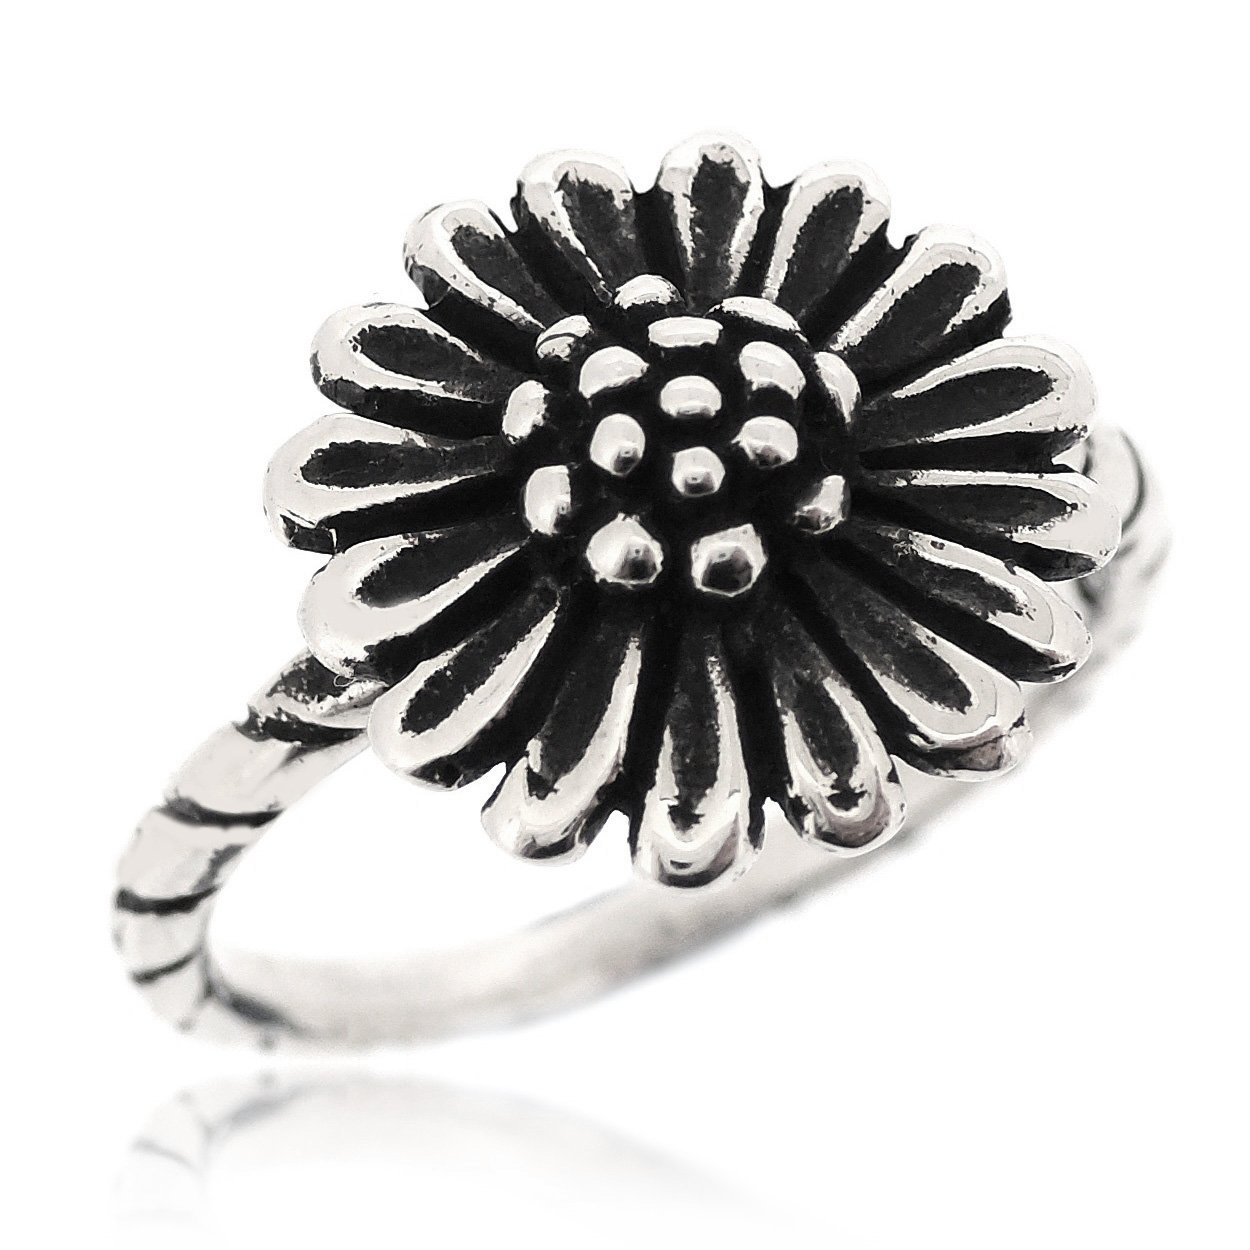 SOVATS Sunflower Antique Blossoming Style Ring for Women 925 Sterling Silver Oxidized Surface - Perfect for Nature Lover